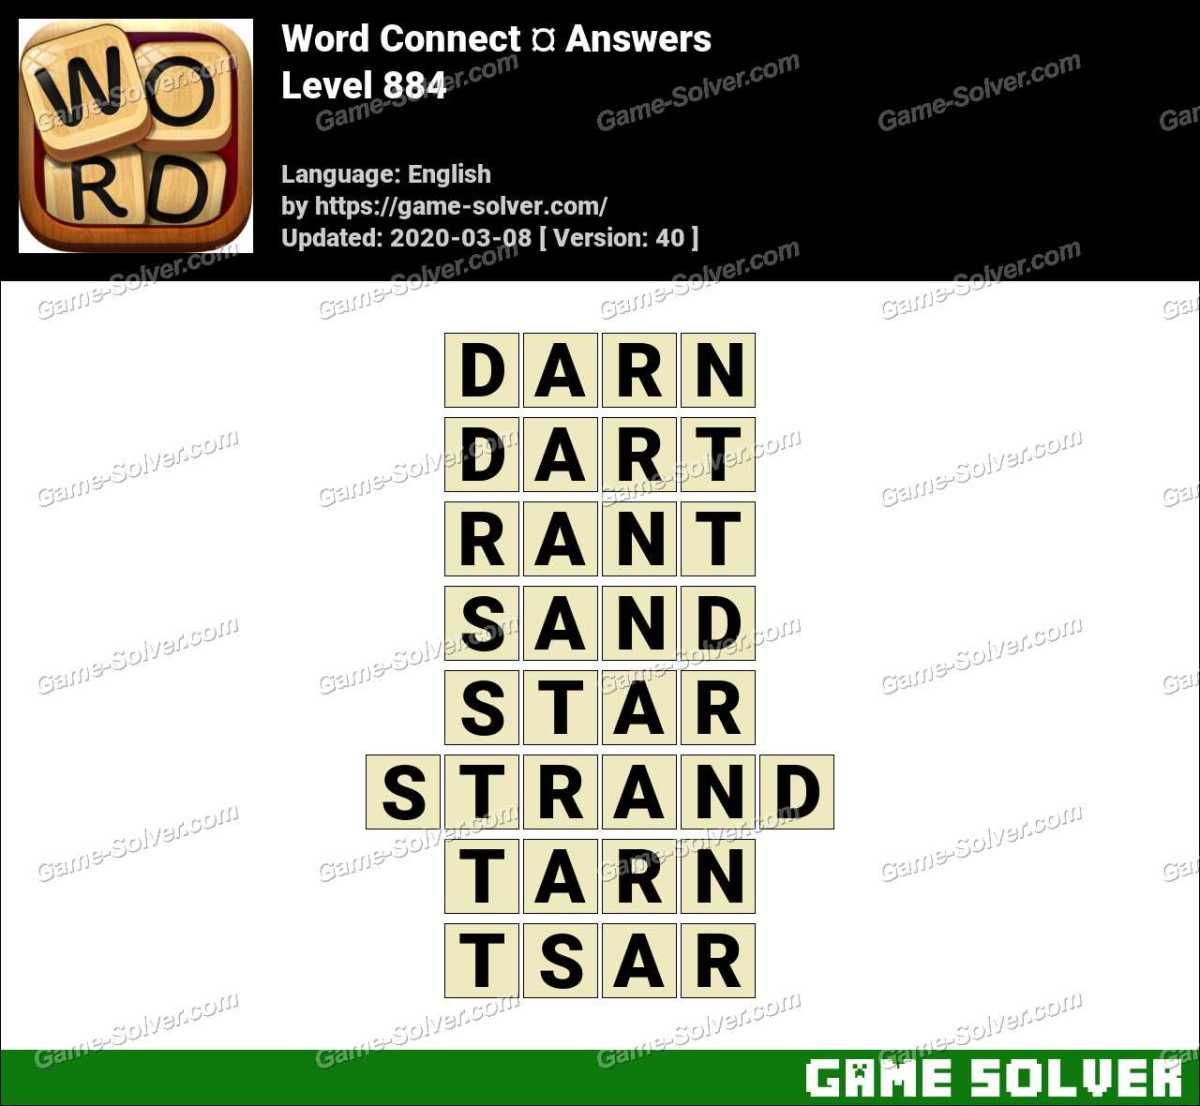 Word Connect Level 884 Answers